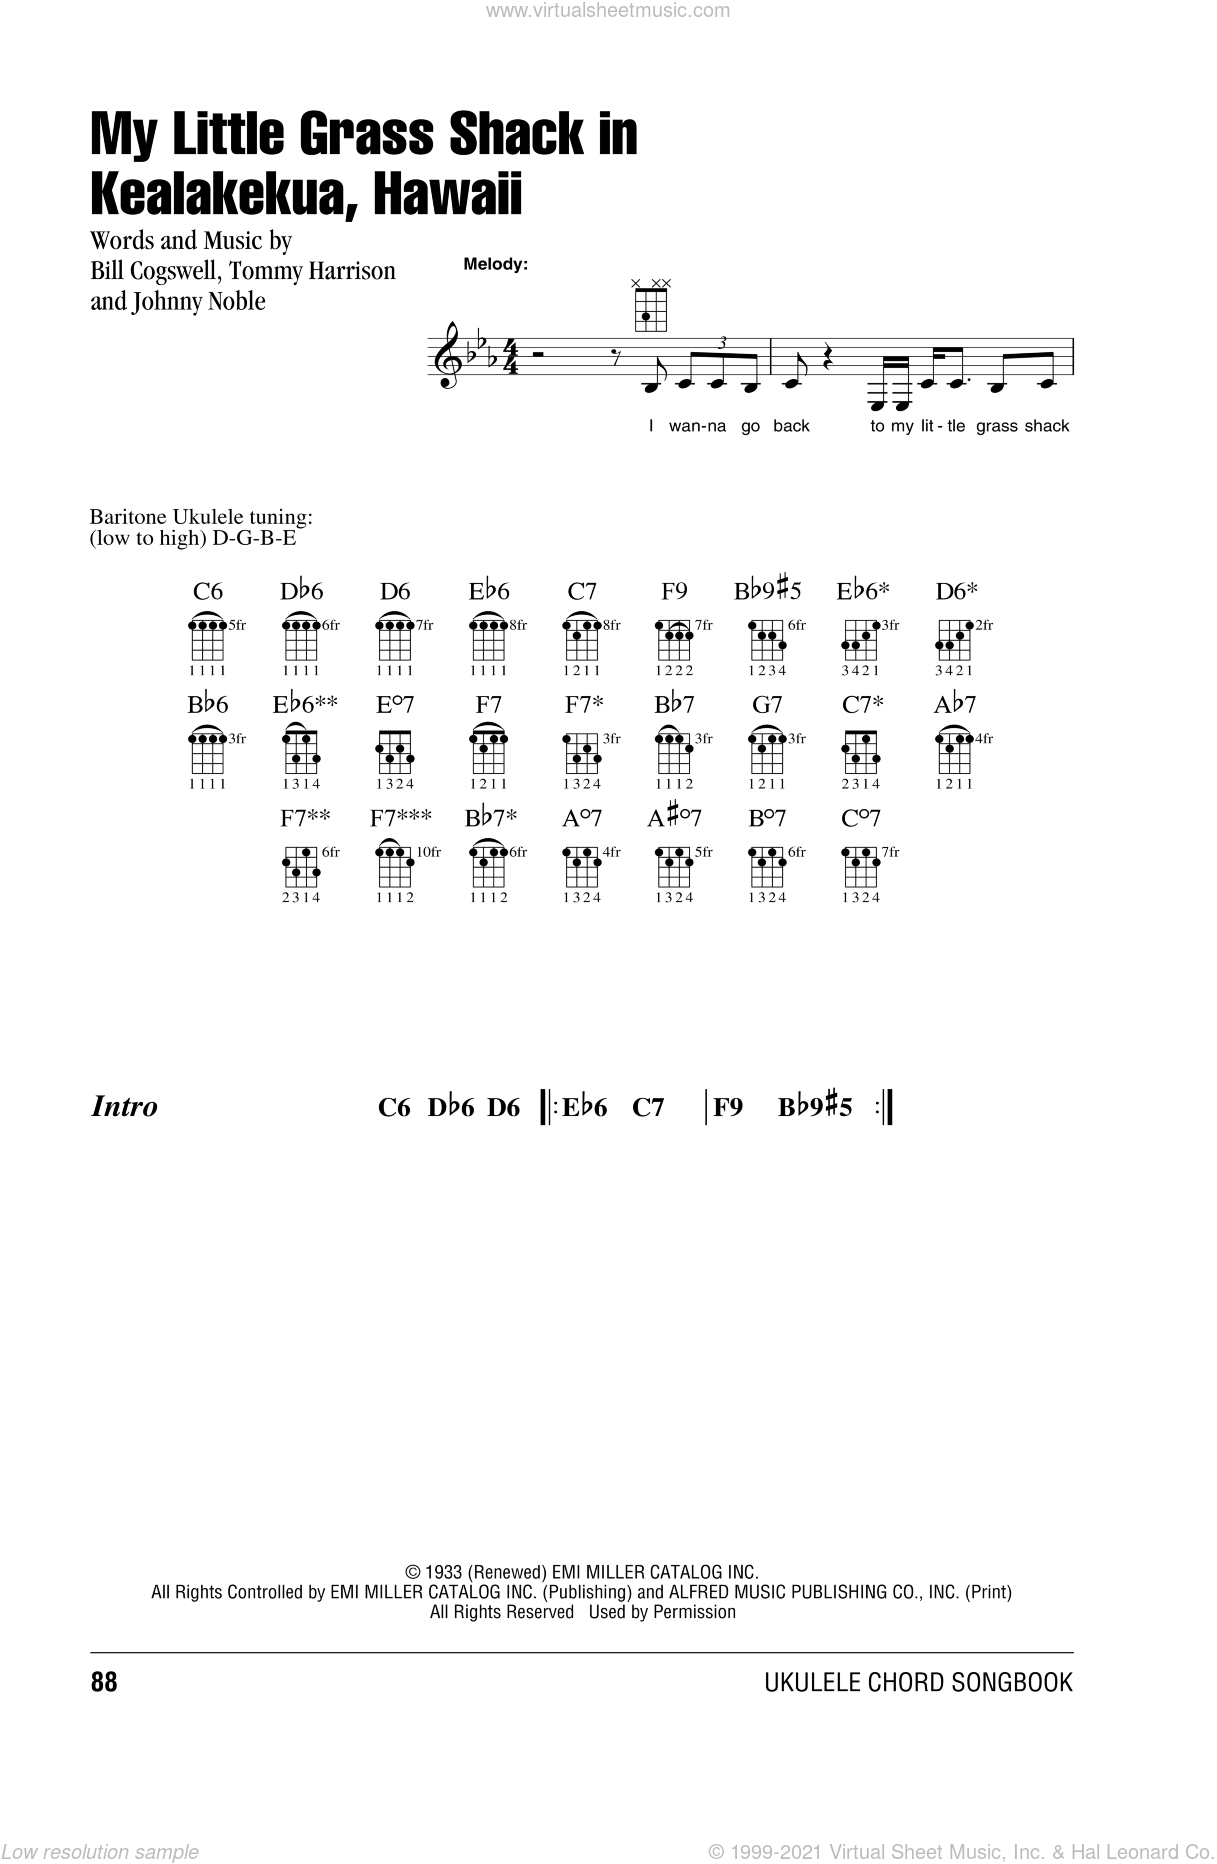 My Little Grass Shack In Kealakekua, Hawaii sheet music for ukulele (chords) by Bill Cogswell, Johnny Noble and Tommy Harrison, intermediate skill level